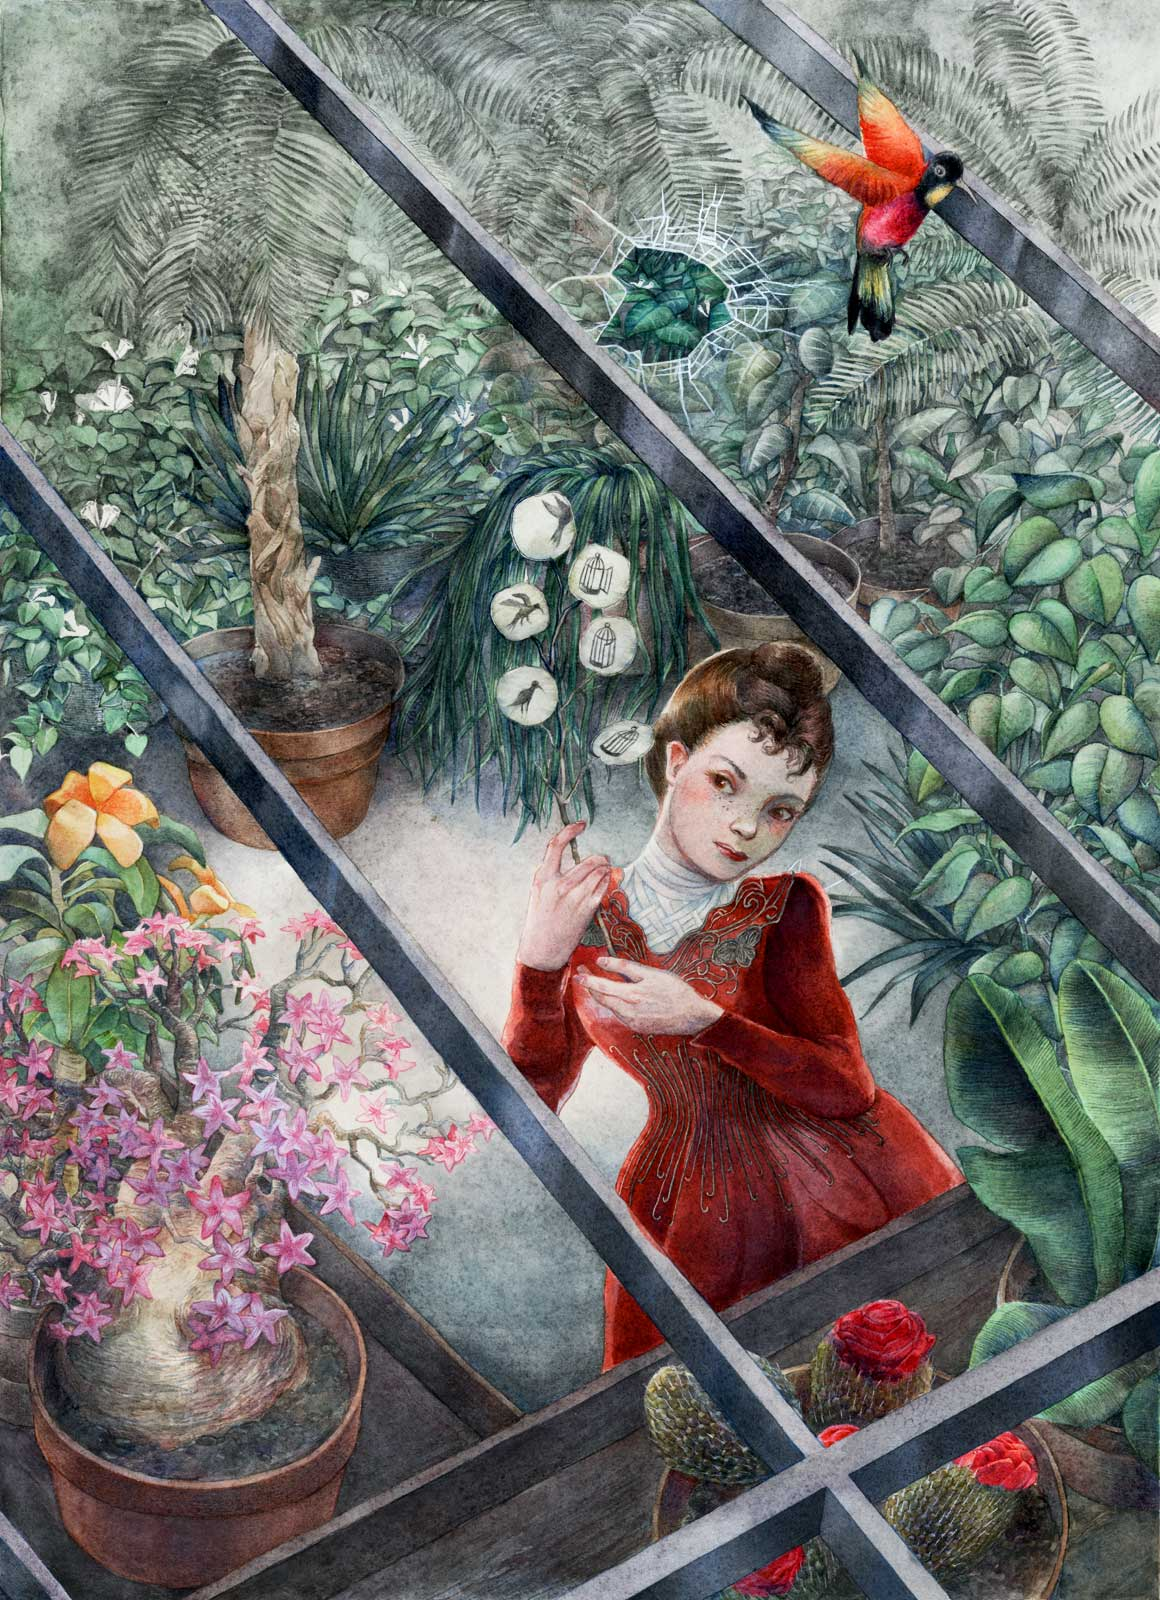 Late victorian lady in a red gown in a greenhouse full of plants holding a lunaria branch on which is represented an animation of a bird breaking free of its cage and even of the greenhouse glasses.